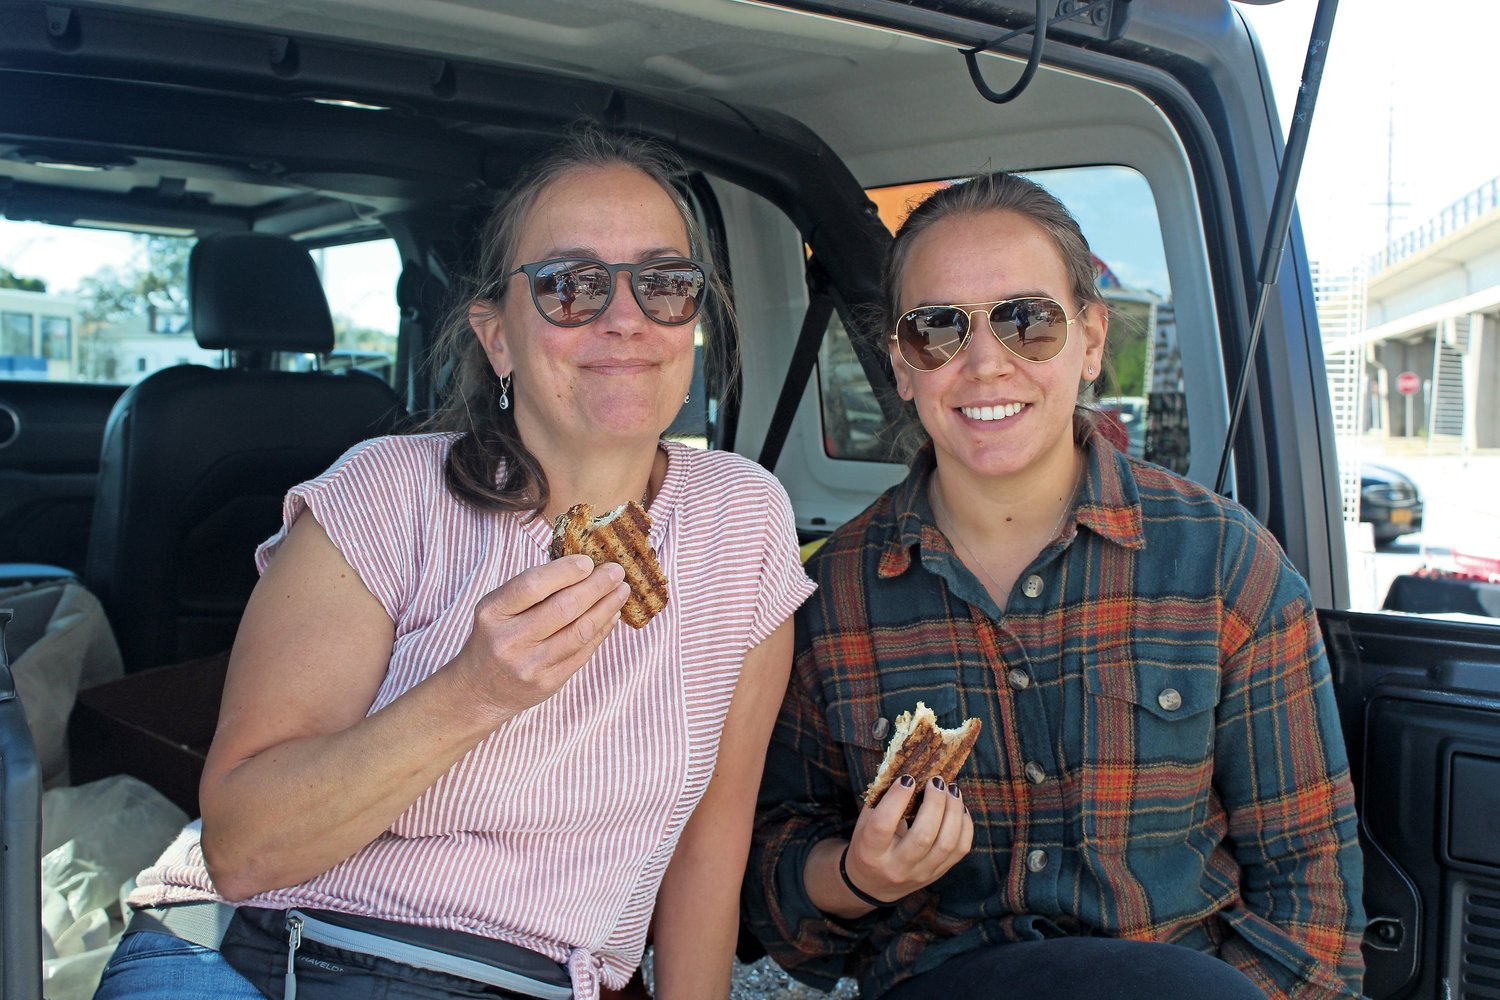 Garden City residents Giule, left, and Angelina Fortino, brought homemade panini sandwiches to the pop-up market.